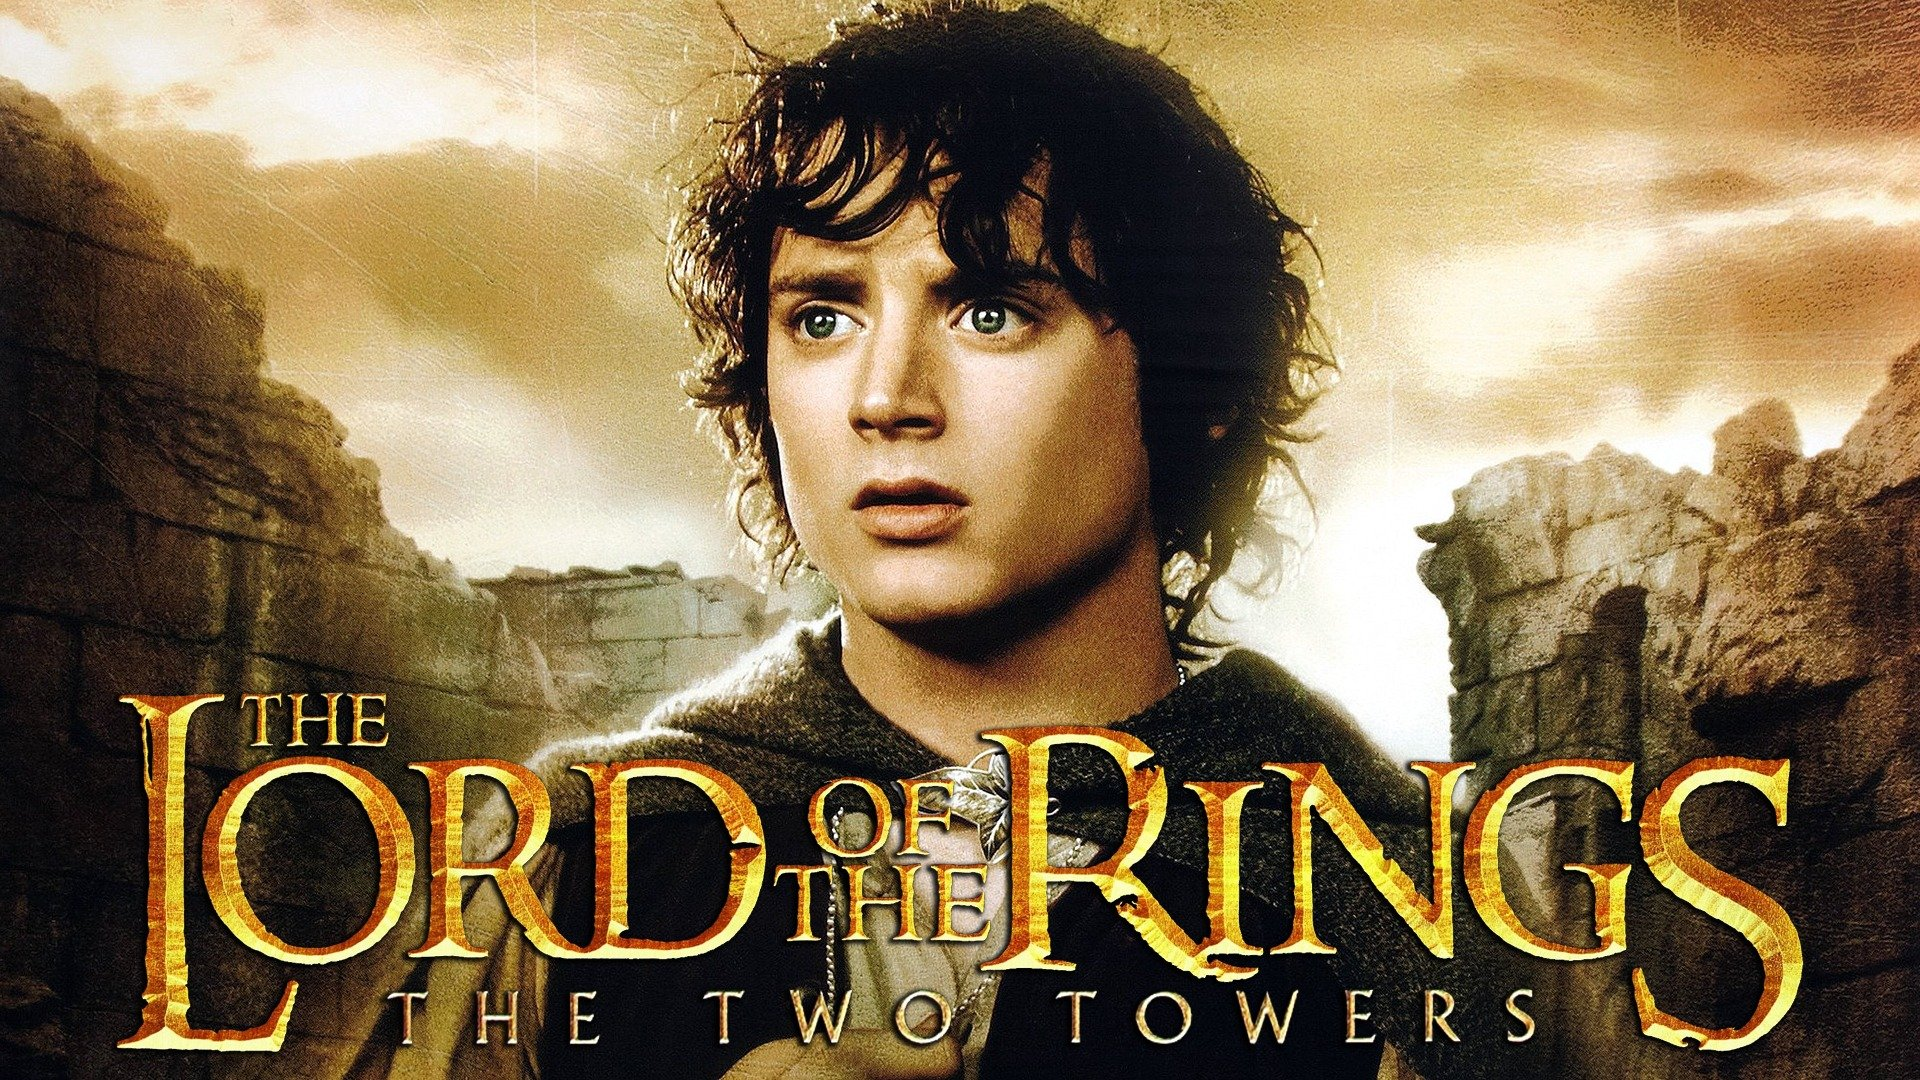 Watch The Lord Of The Rings The Two Towers Online With Neon From 4 99